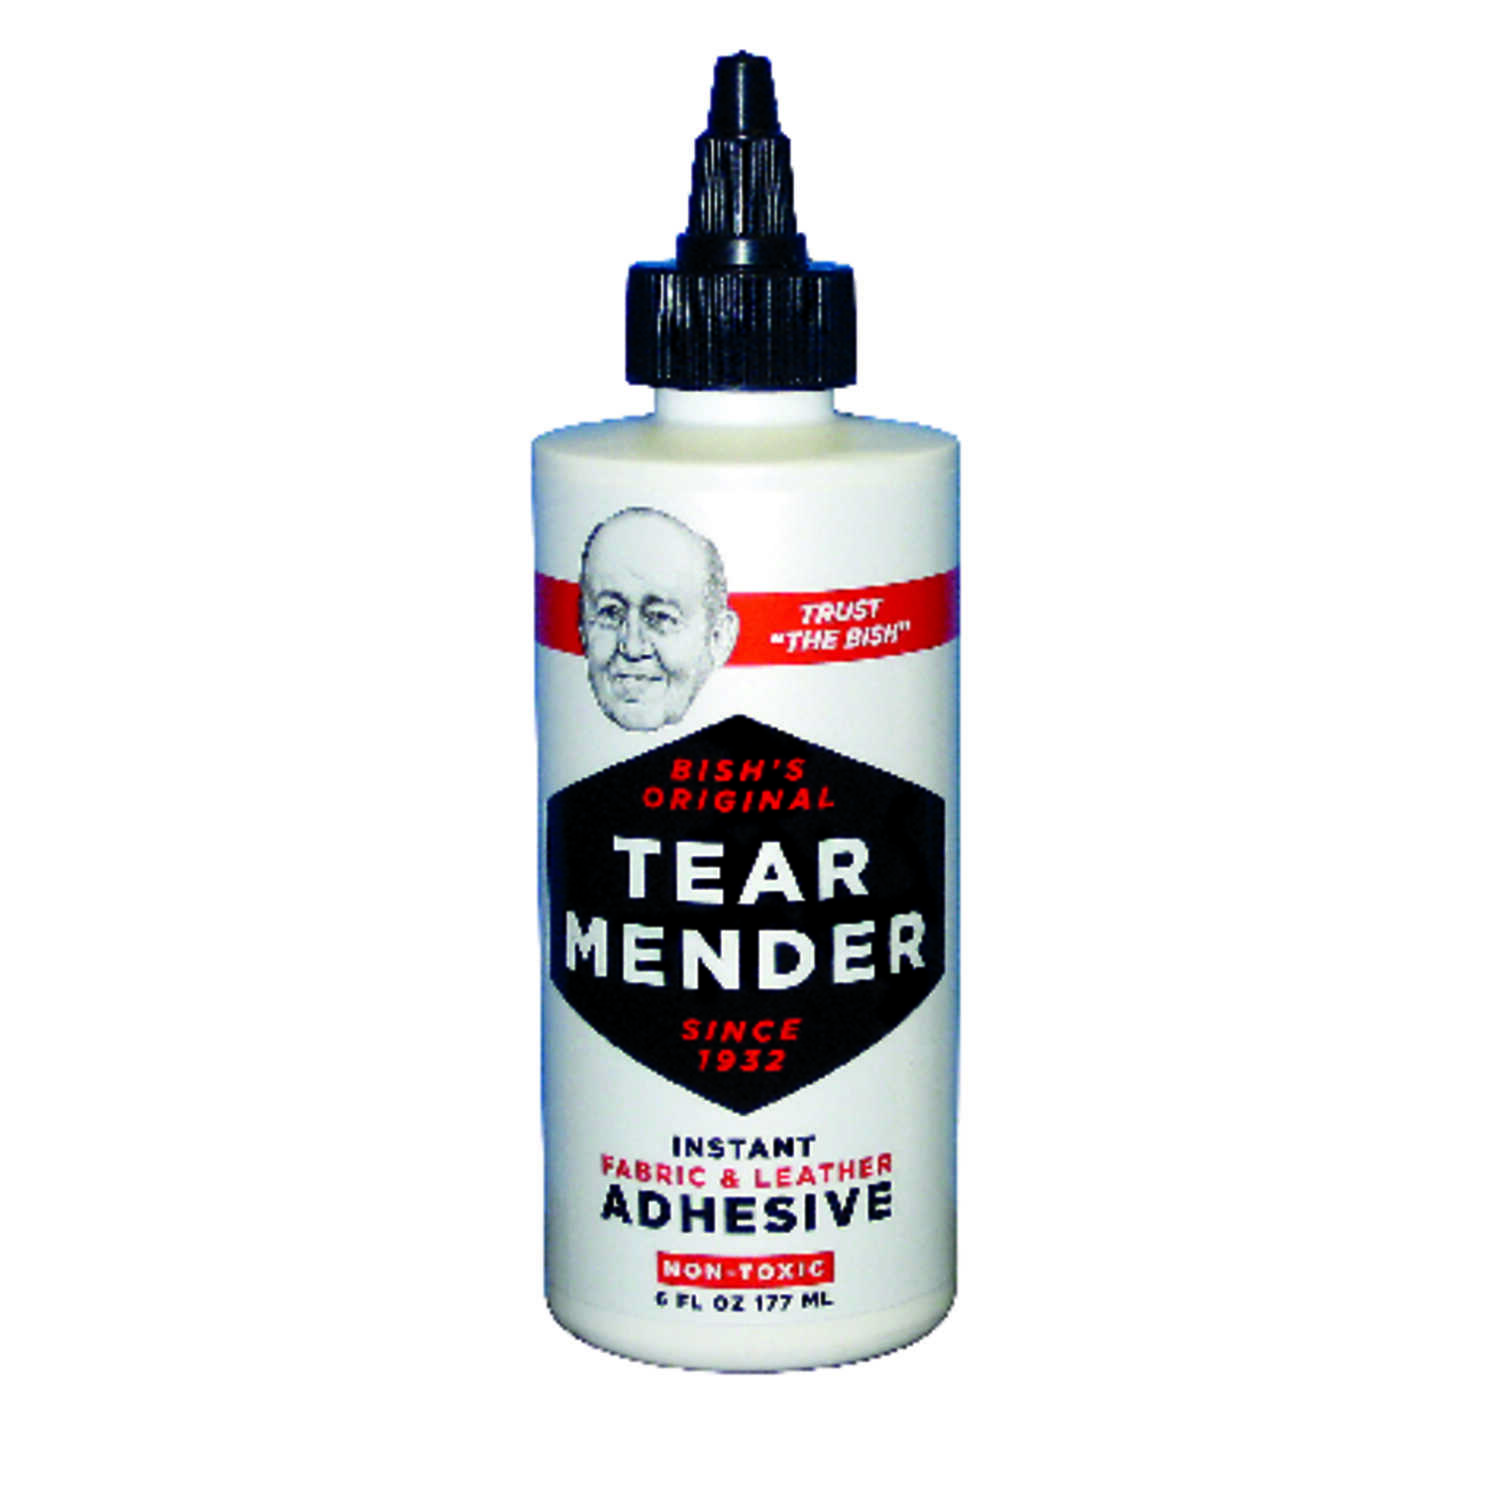 Tear Mender  High Strength  Liquid  Fabric & Leather Adhesive  6 Oz